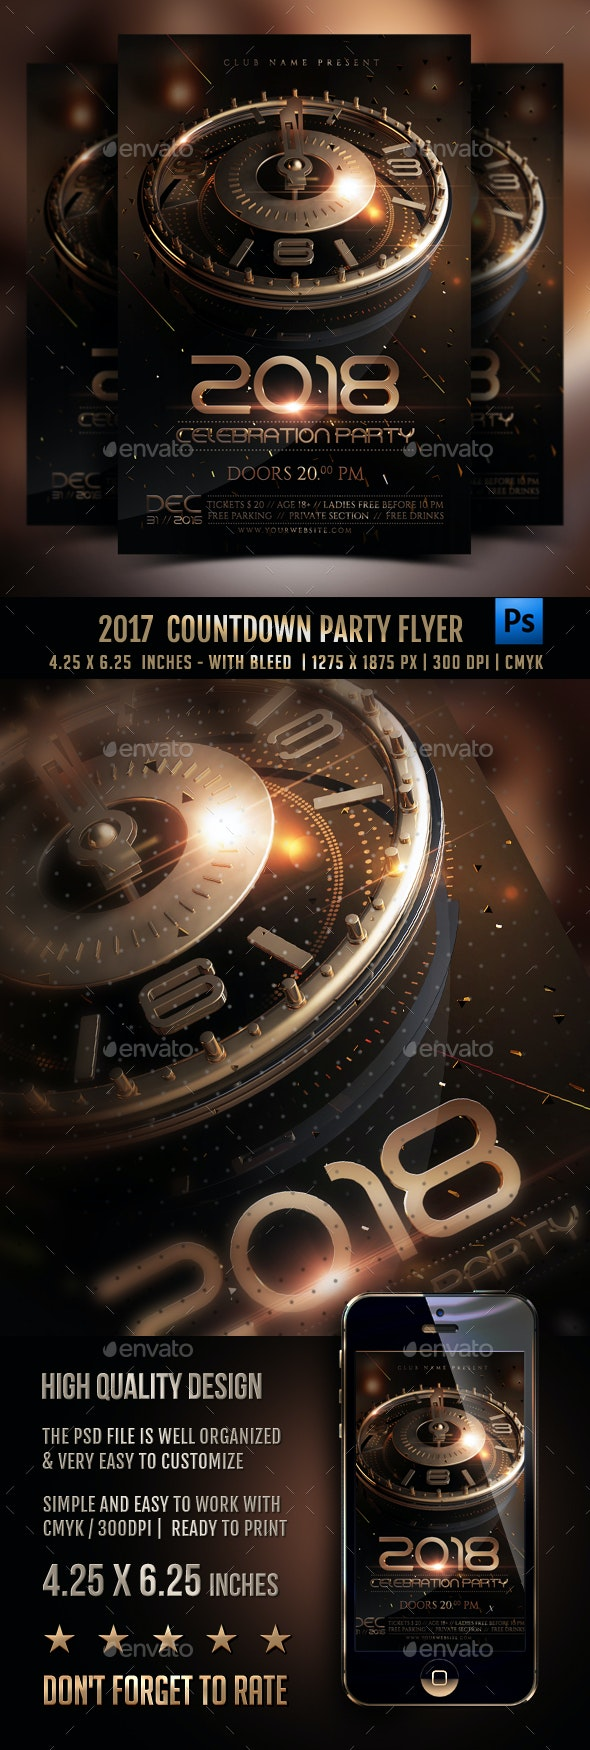 New Year Countdown Flyer - Events Flyers